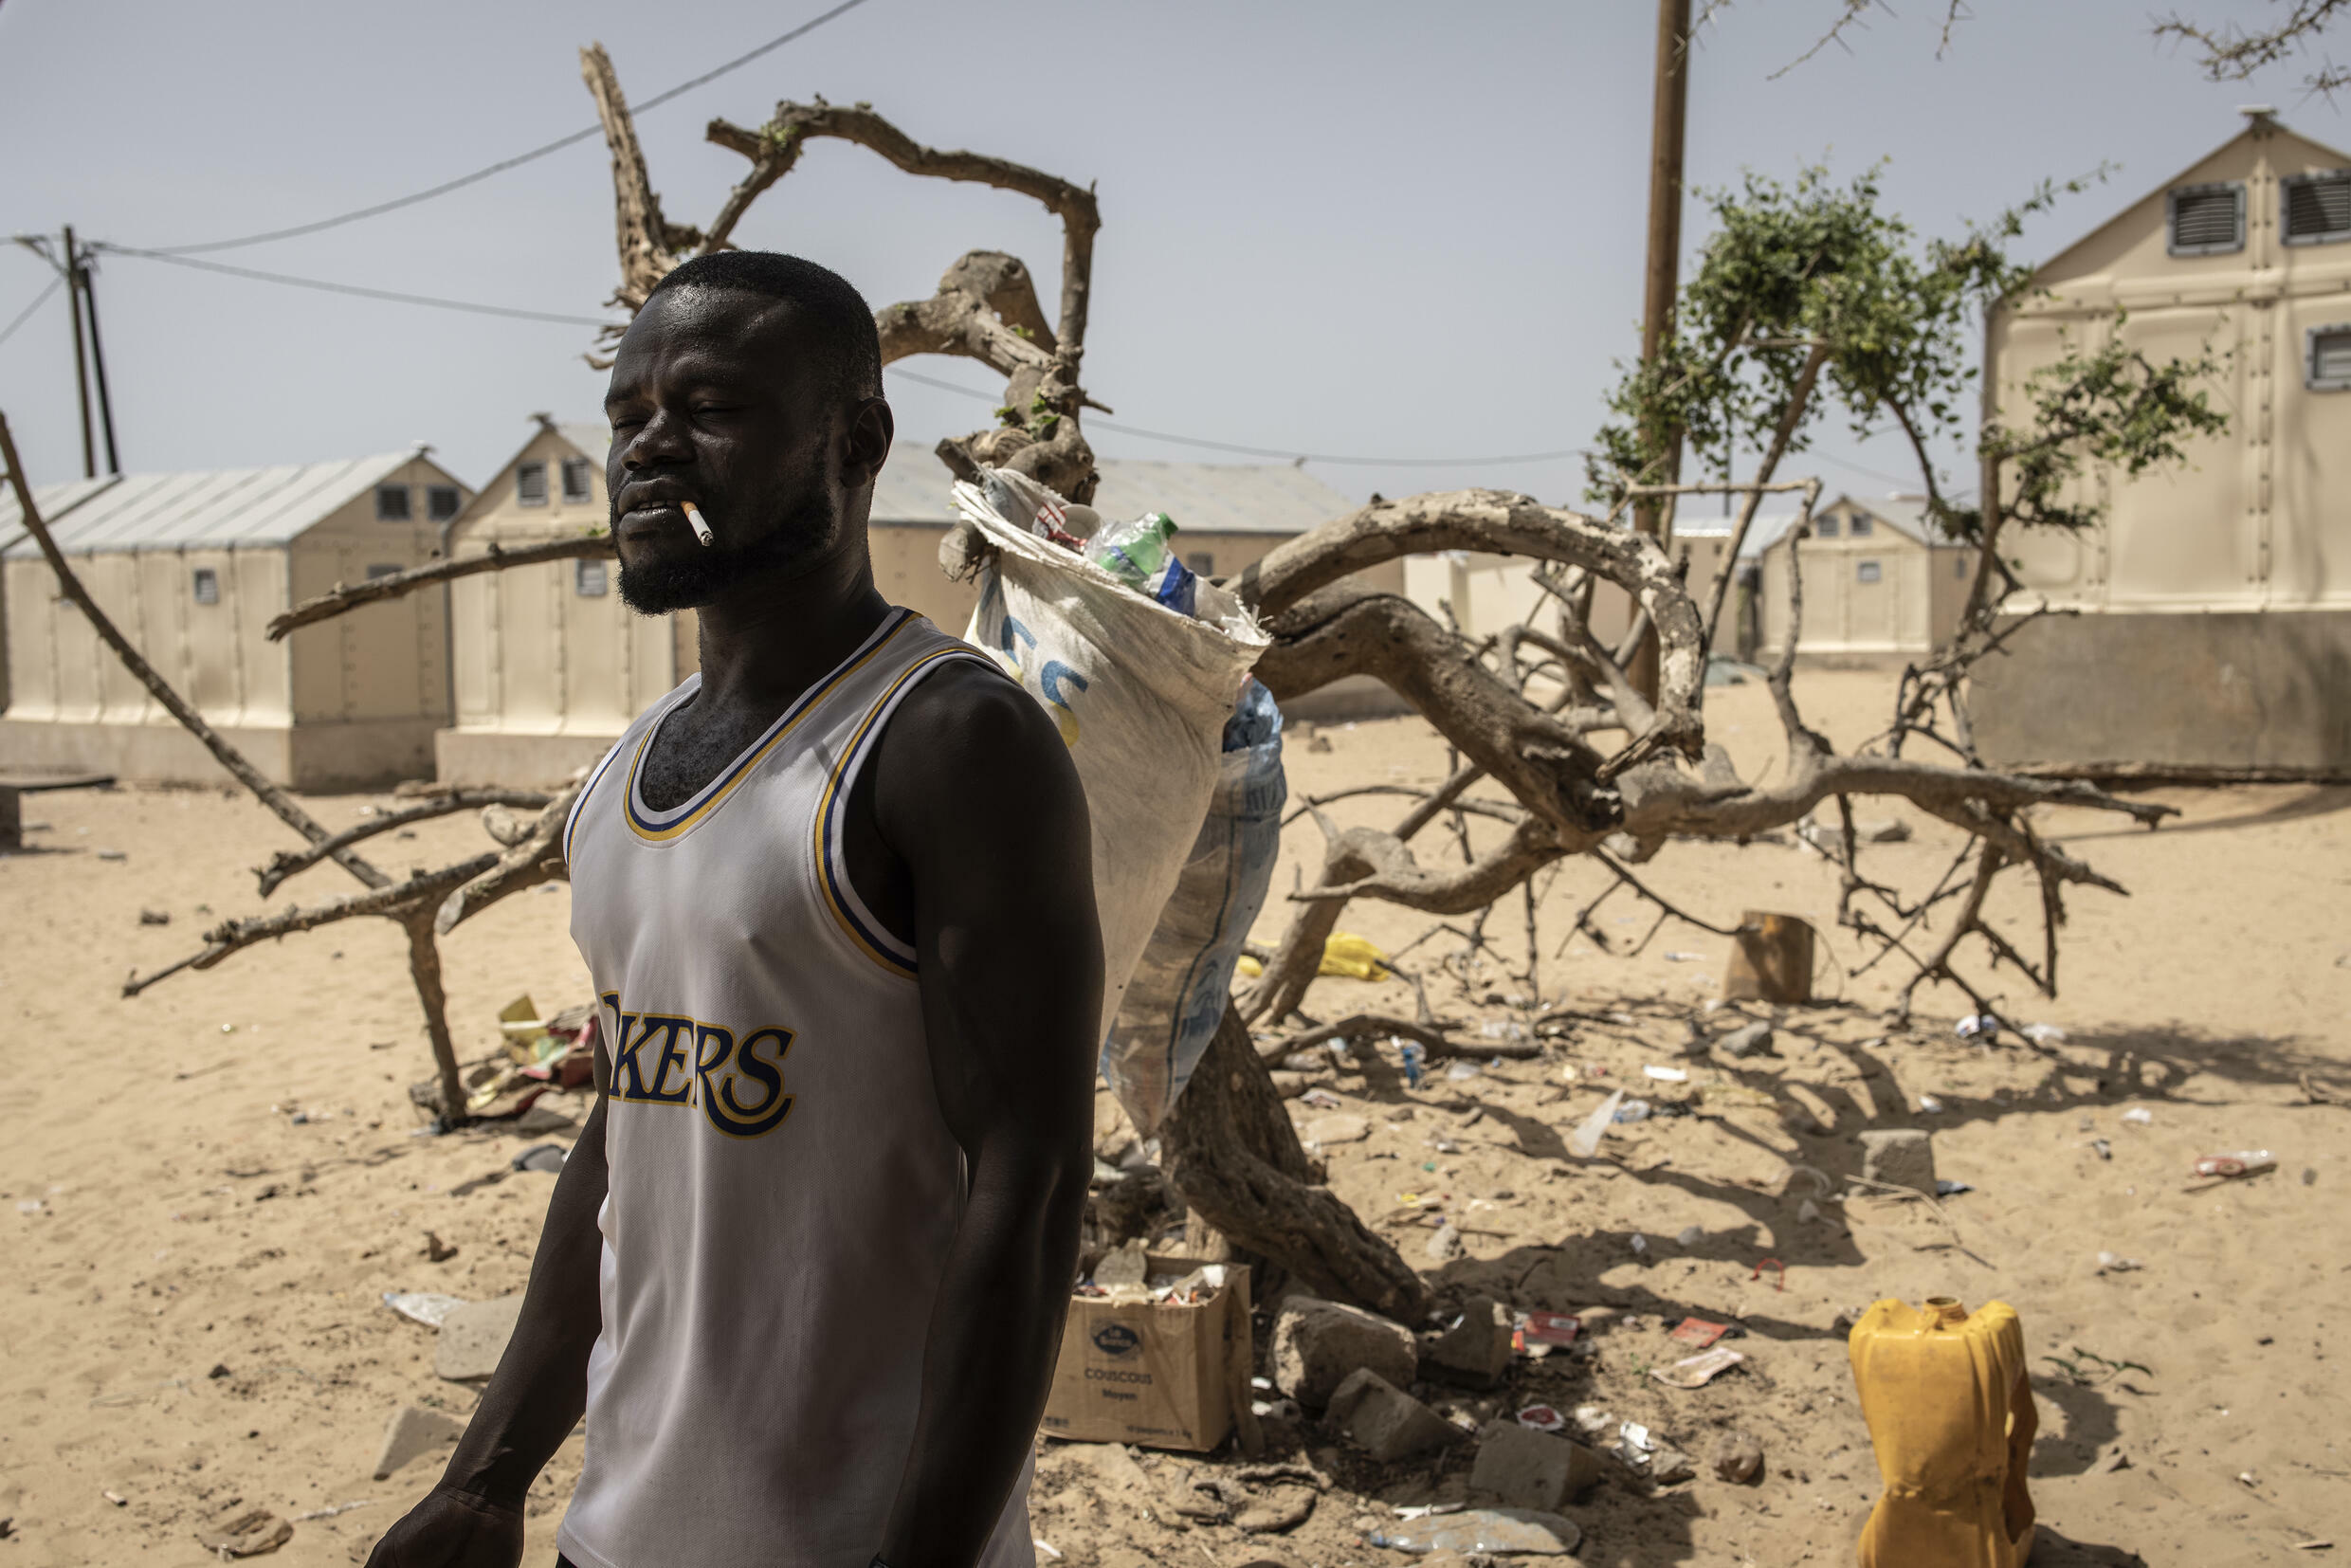 Many residents had no choice but to move to an internally displaced persons camp as their homes were engulfed by raging seas, coastal erosion and the collapsing soil beneath them.